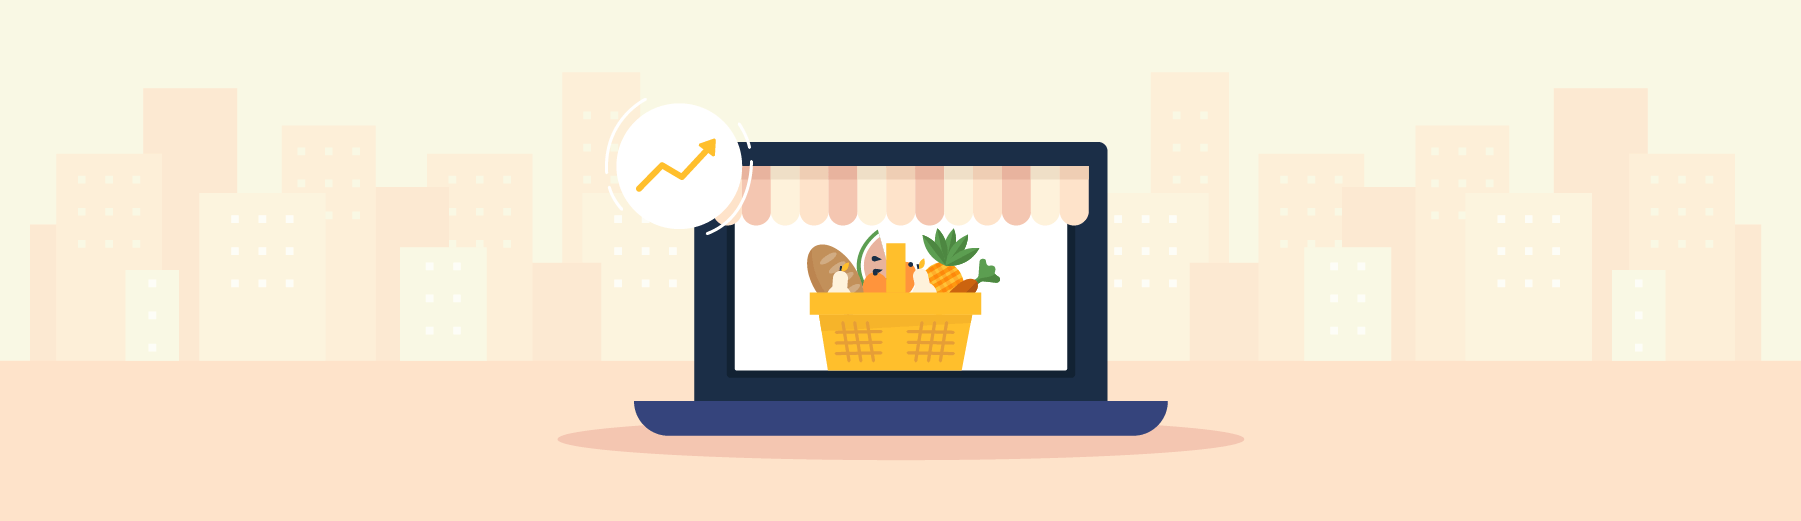 How content material helped an internet grocery retailer improve web site site visitors by 56% [success story] | Brafton